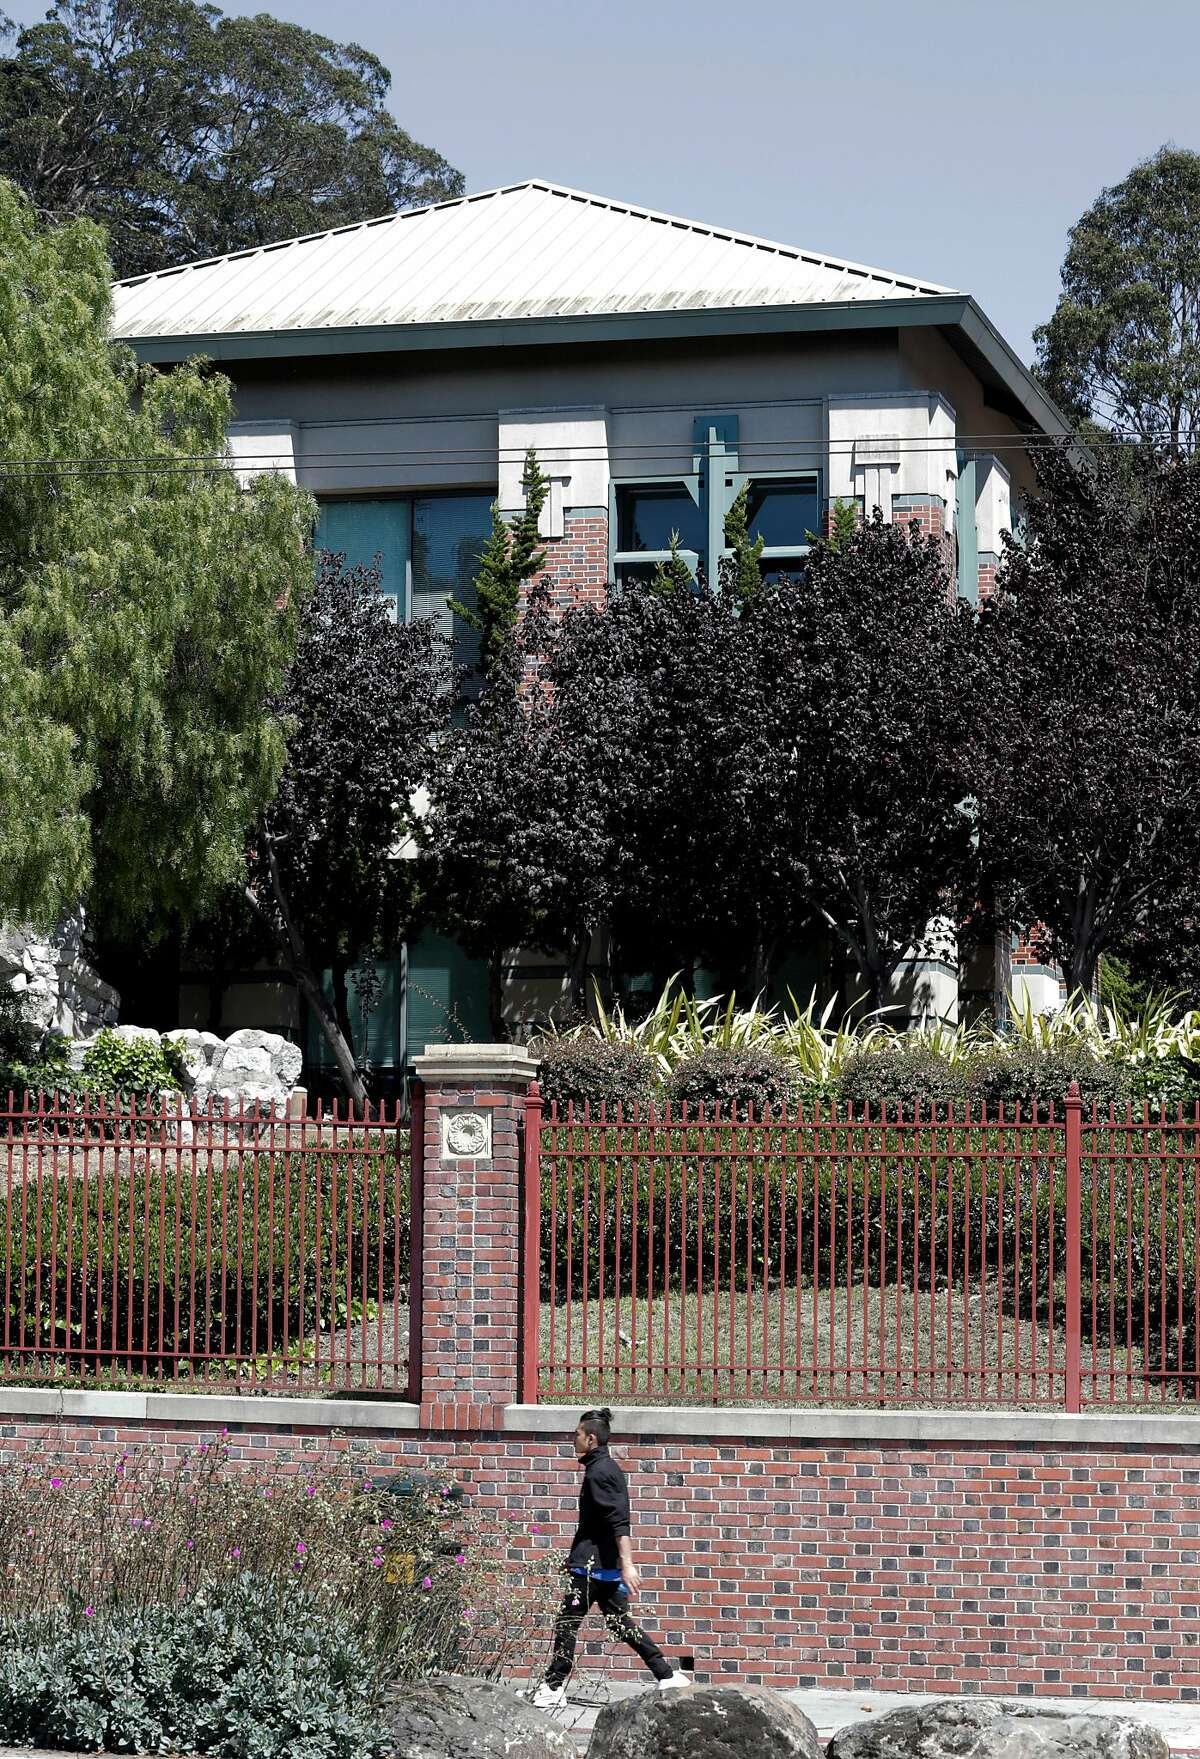 A pedestrian walks by the San Francisco Adult Residential mental health services on Potrero Avenue in San Francisco, Calif., on Wednesday, August 21, 2019. The city will be removing 'mental health beds' from the facility which offers long-term mental health beds to people and moving the beds to Hummingbird Place which offers more short-term mental health beds.